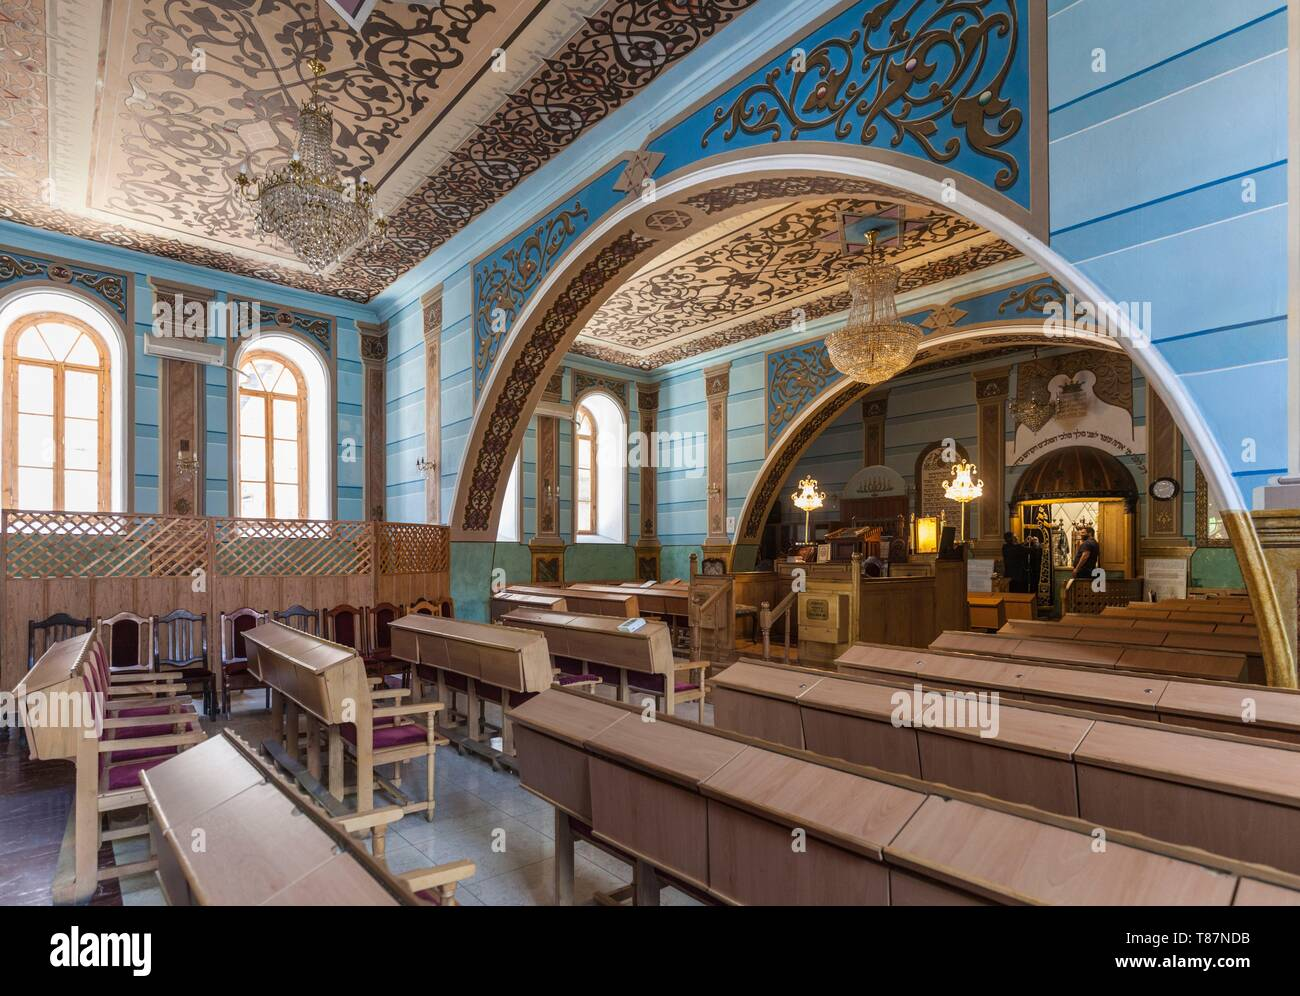 Georgia, Tbilisi, Tbilisi Great Synagogue, interior - Stock Image